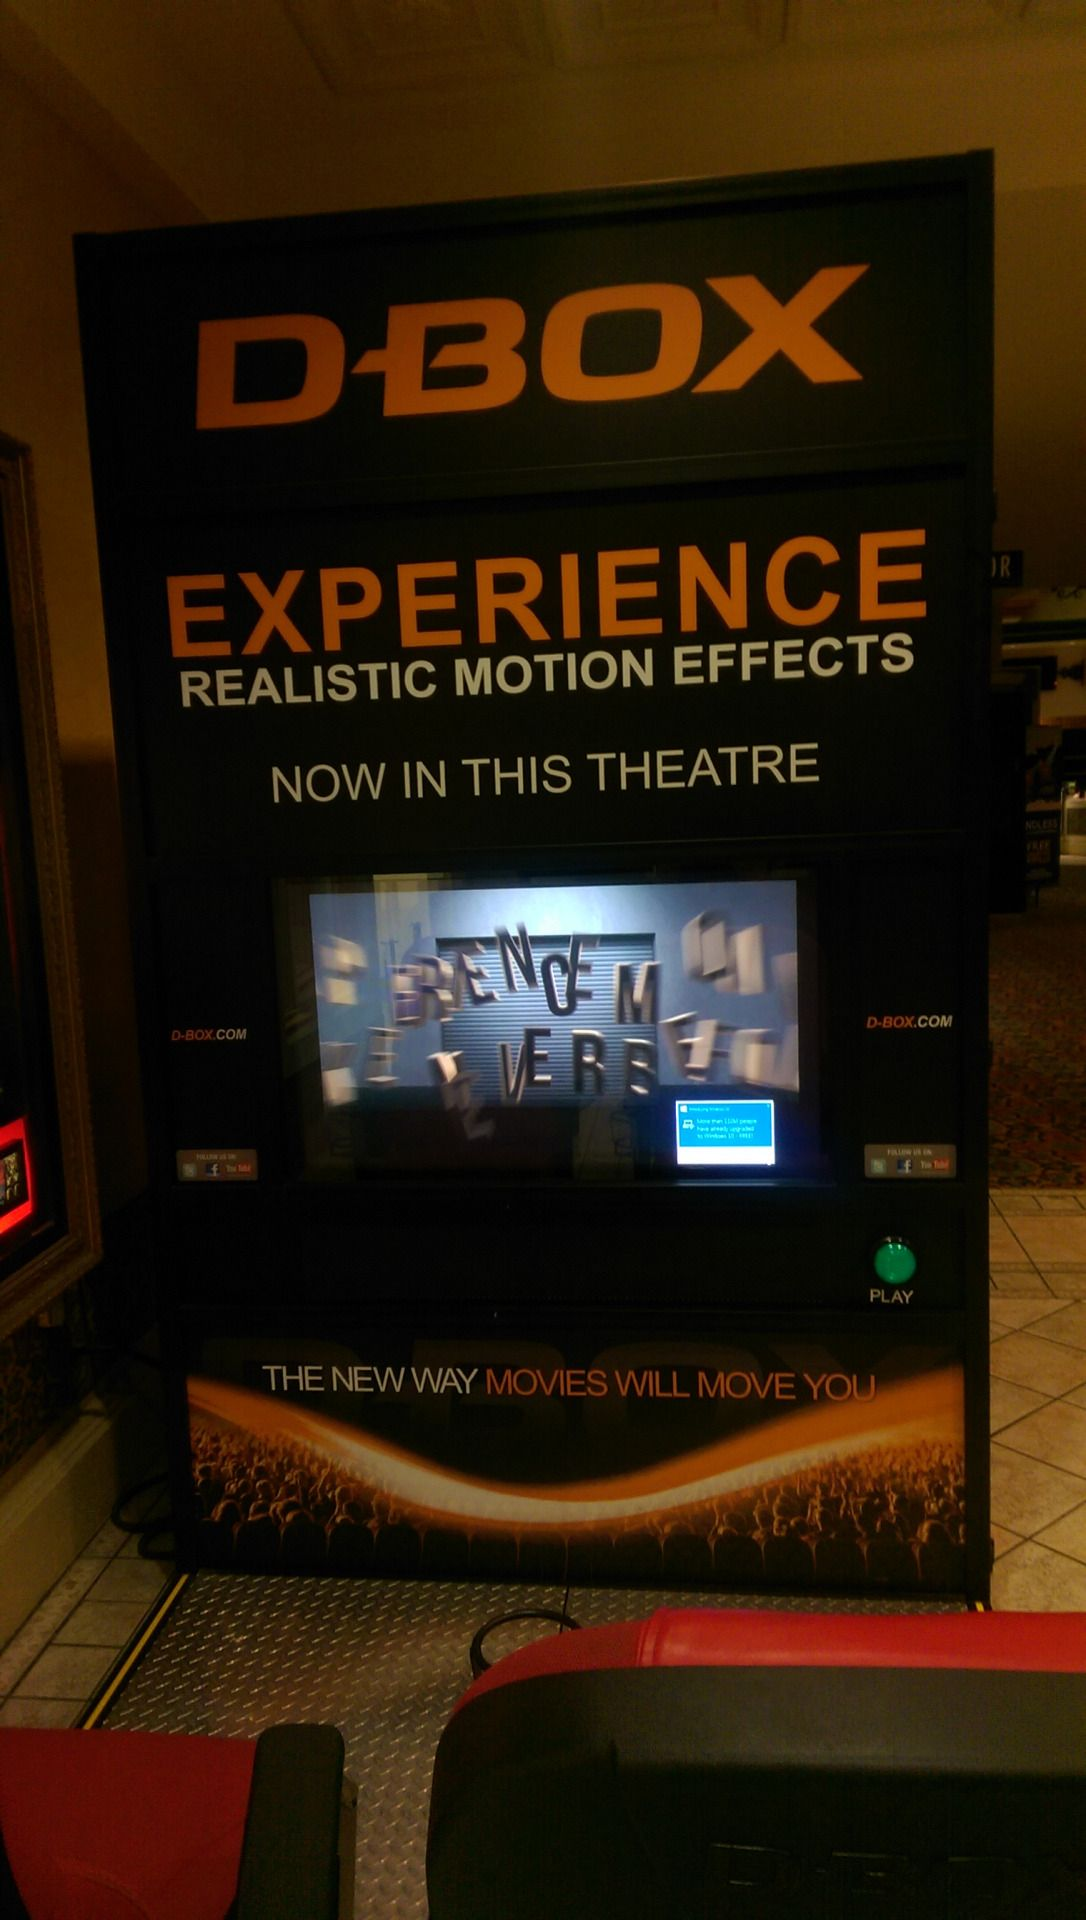 (x-post) Improve your cinema experience with Windows 10 #bsod #pbsod